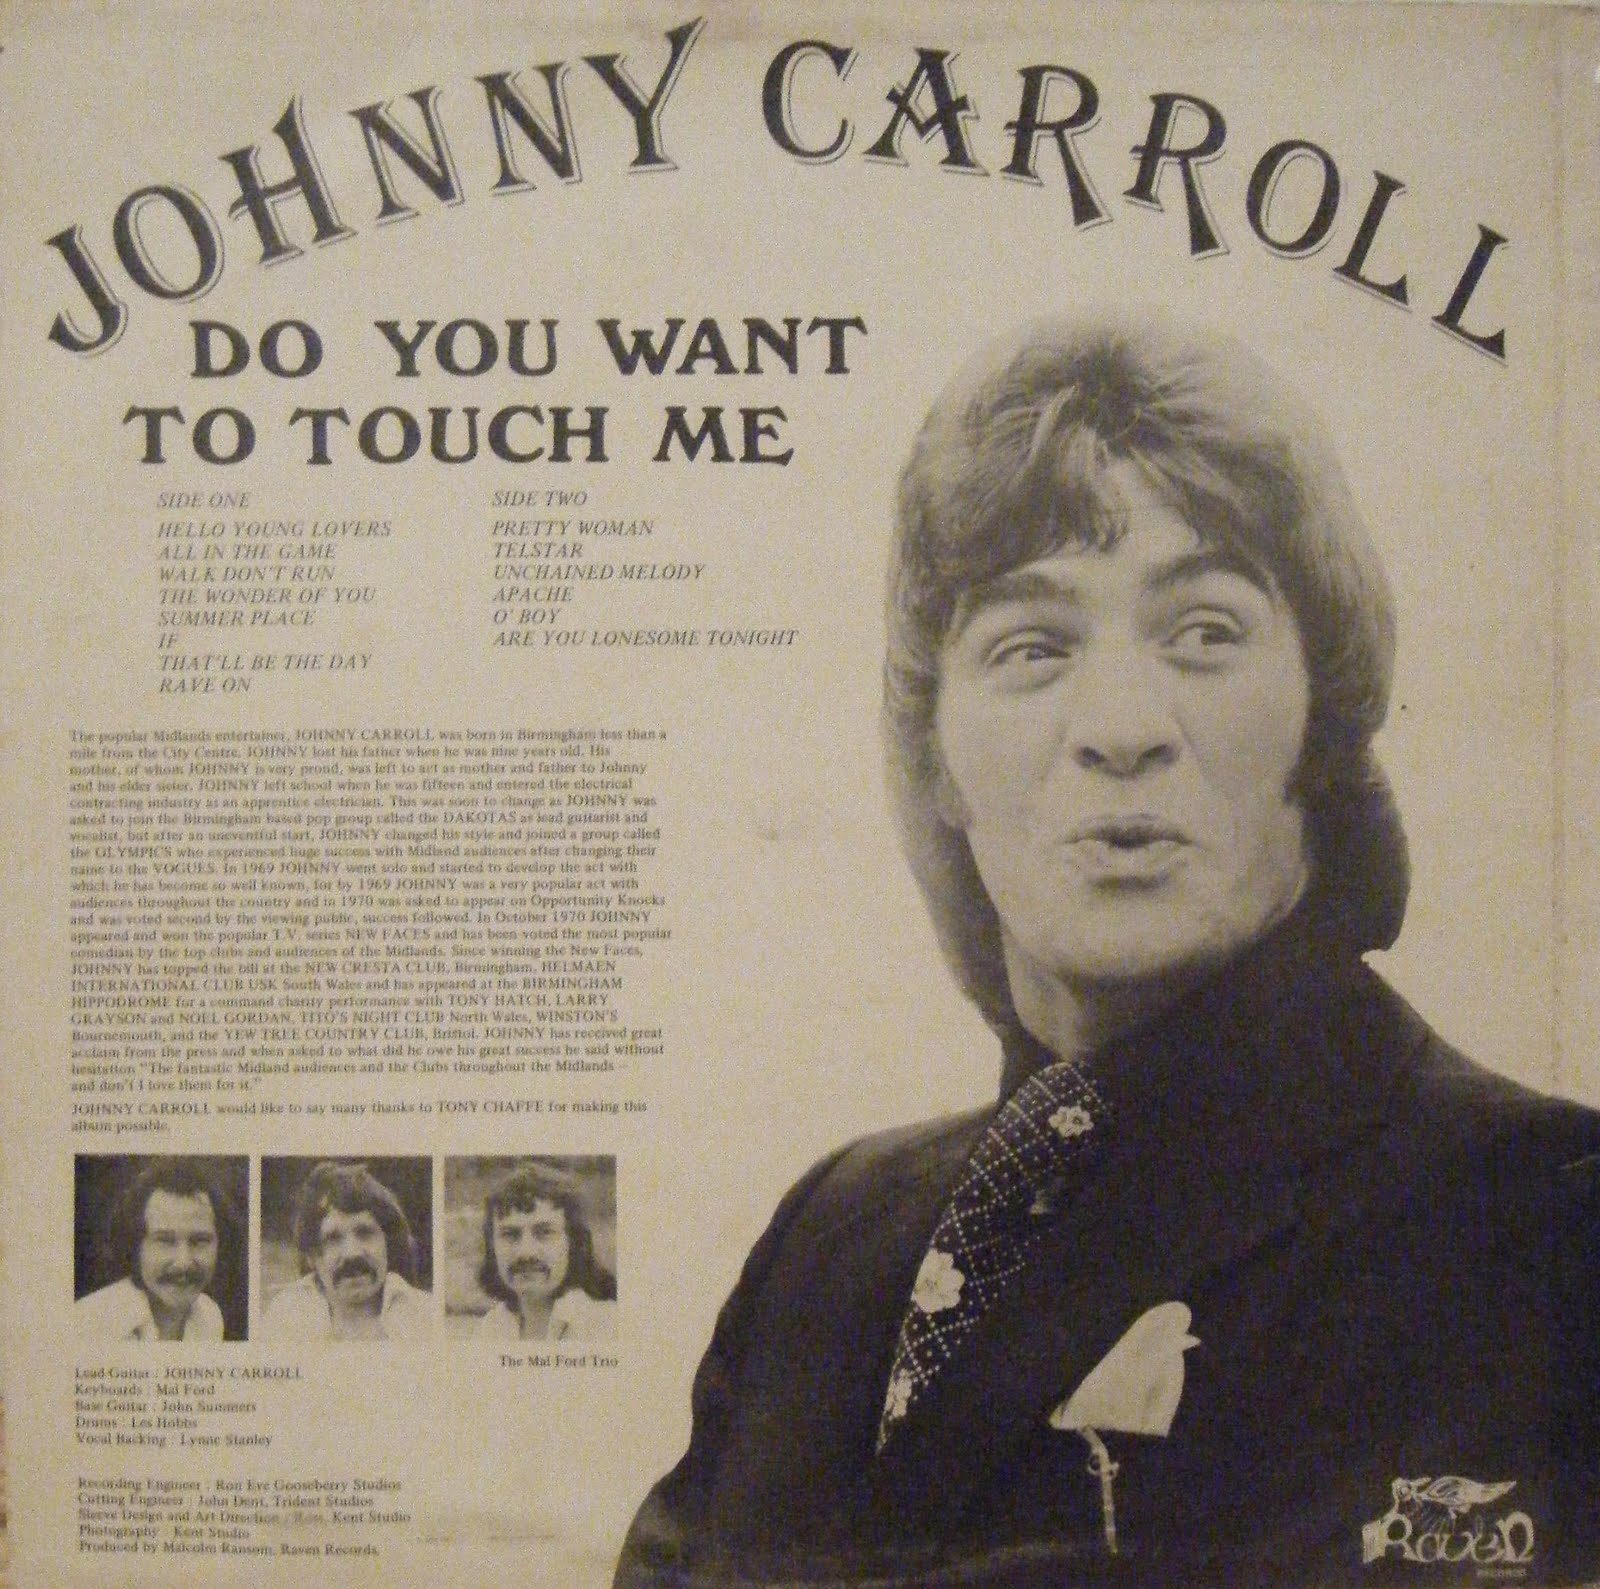 Popular Midlands Entertainer Johnny Carroll Do You Want